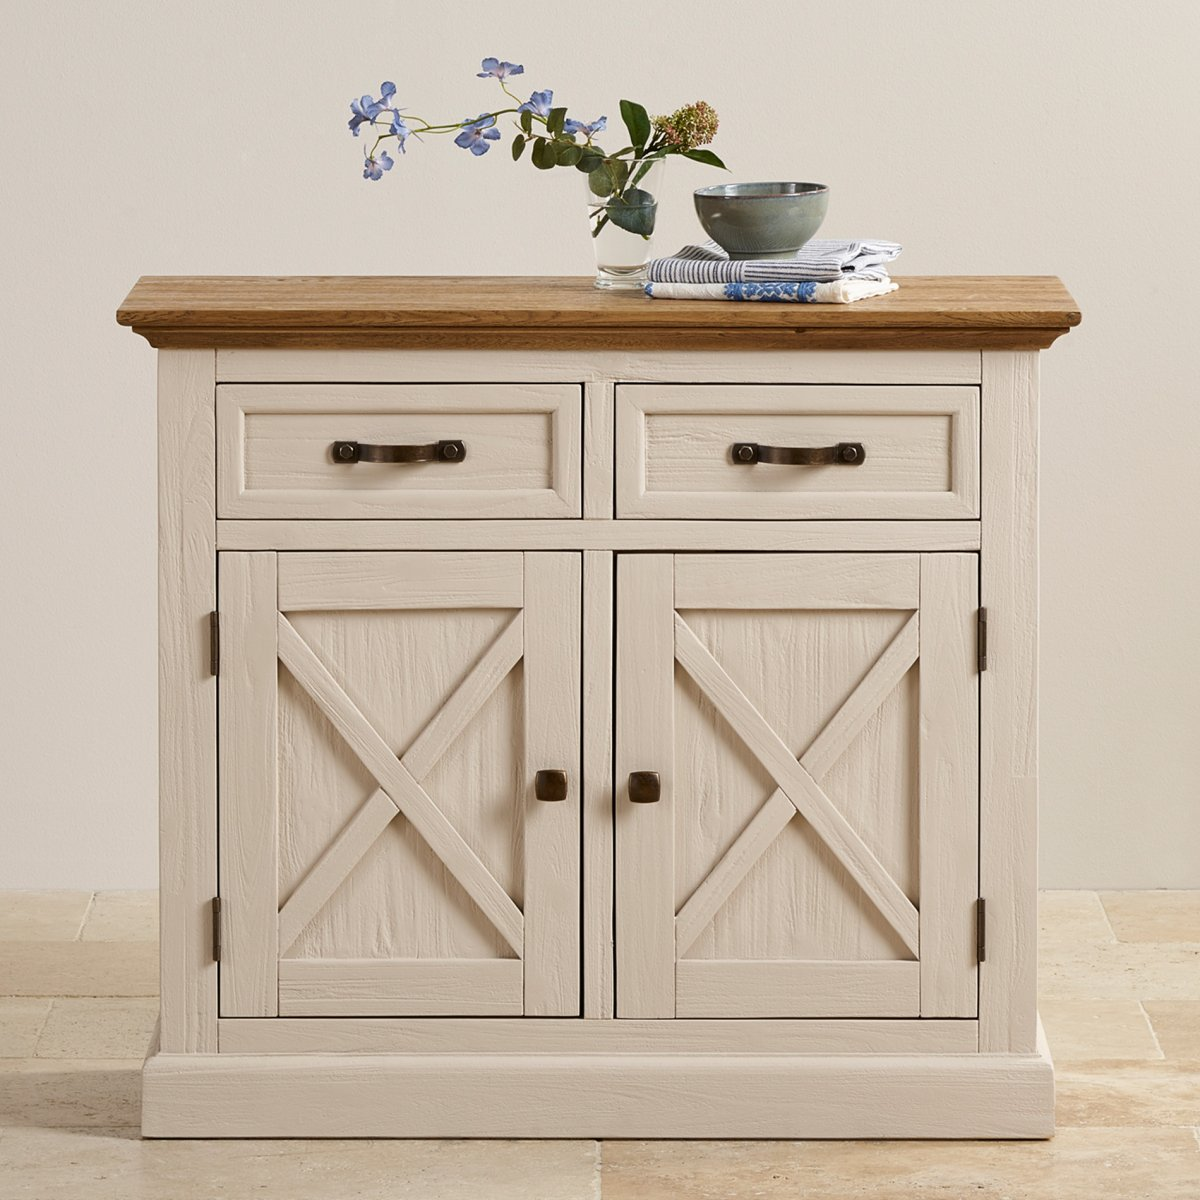 Seychelles shabby chic painted small sideboard brushed for Bad sideboard